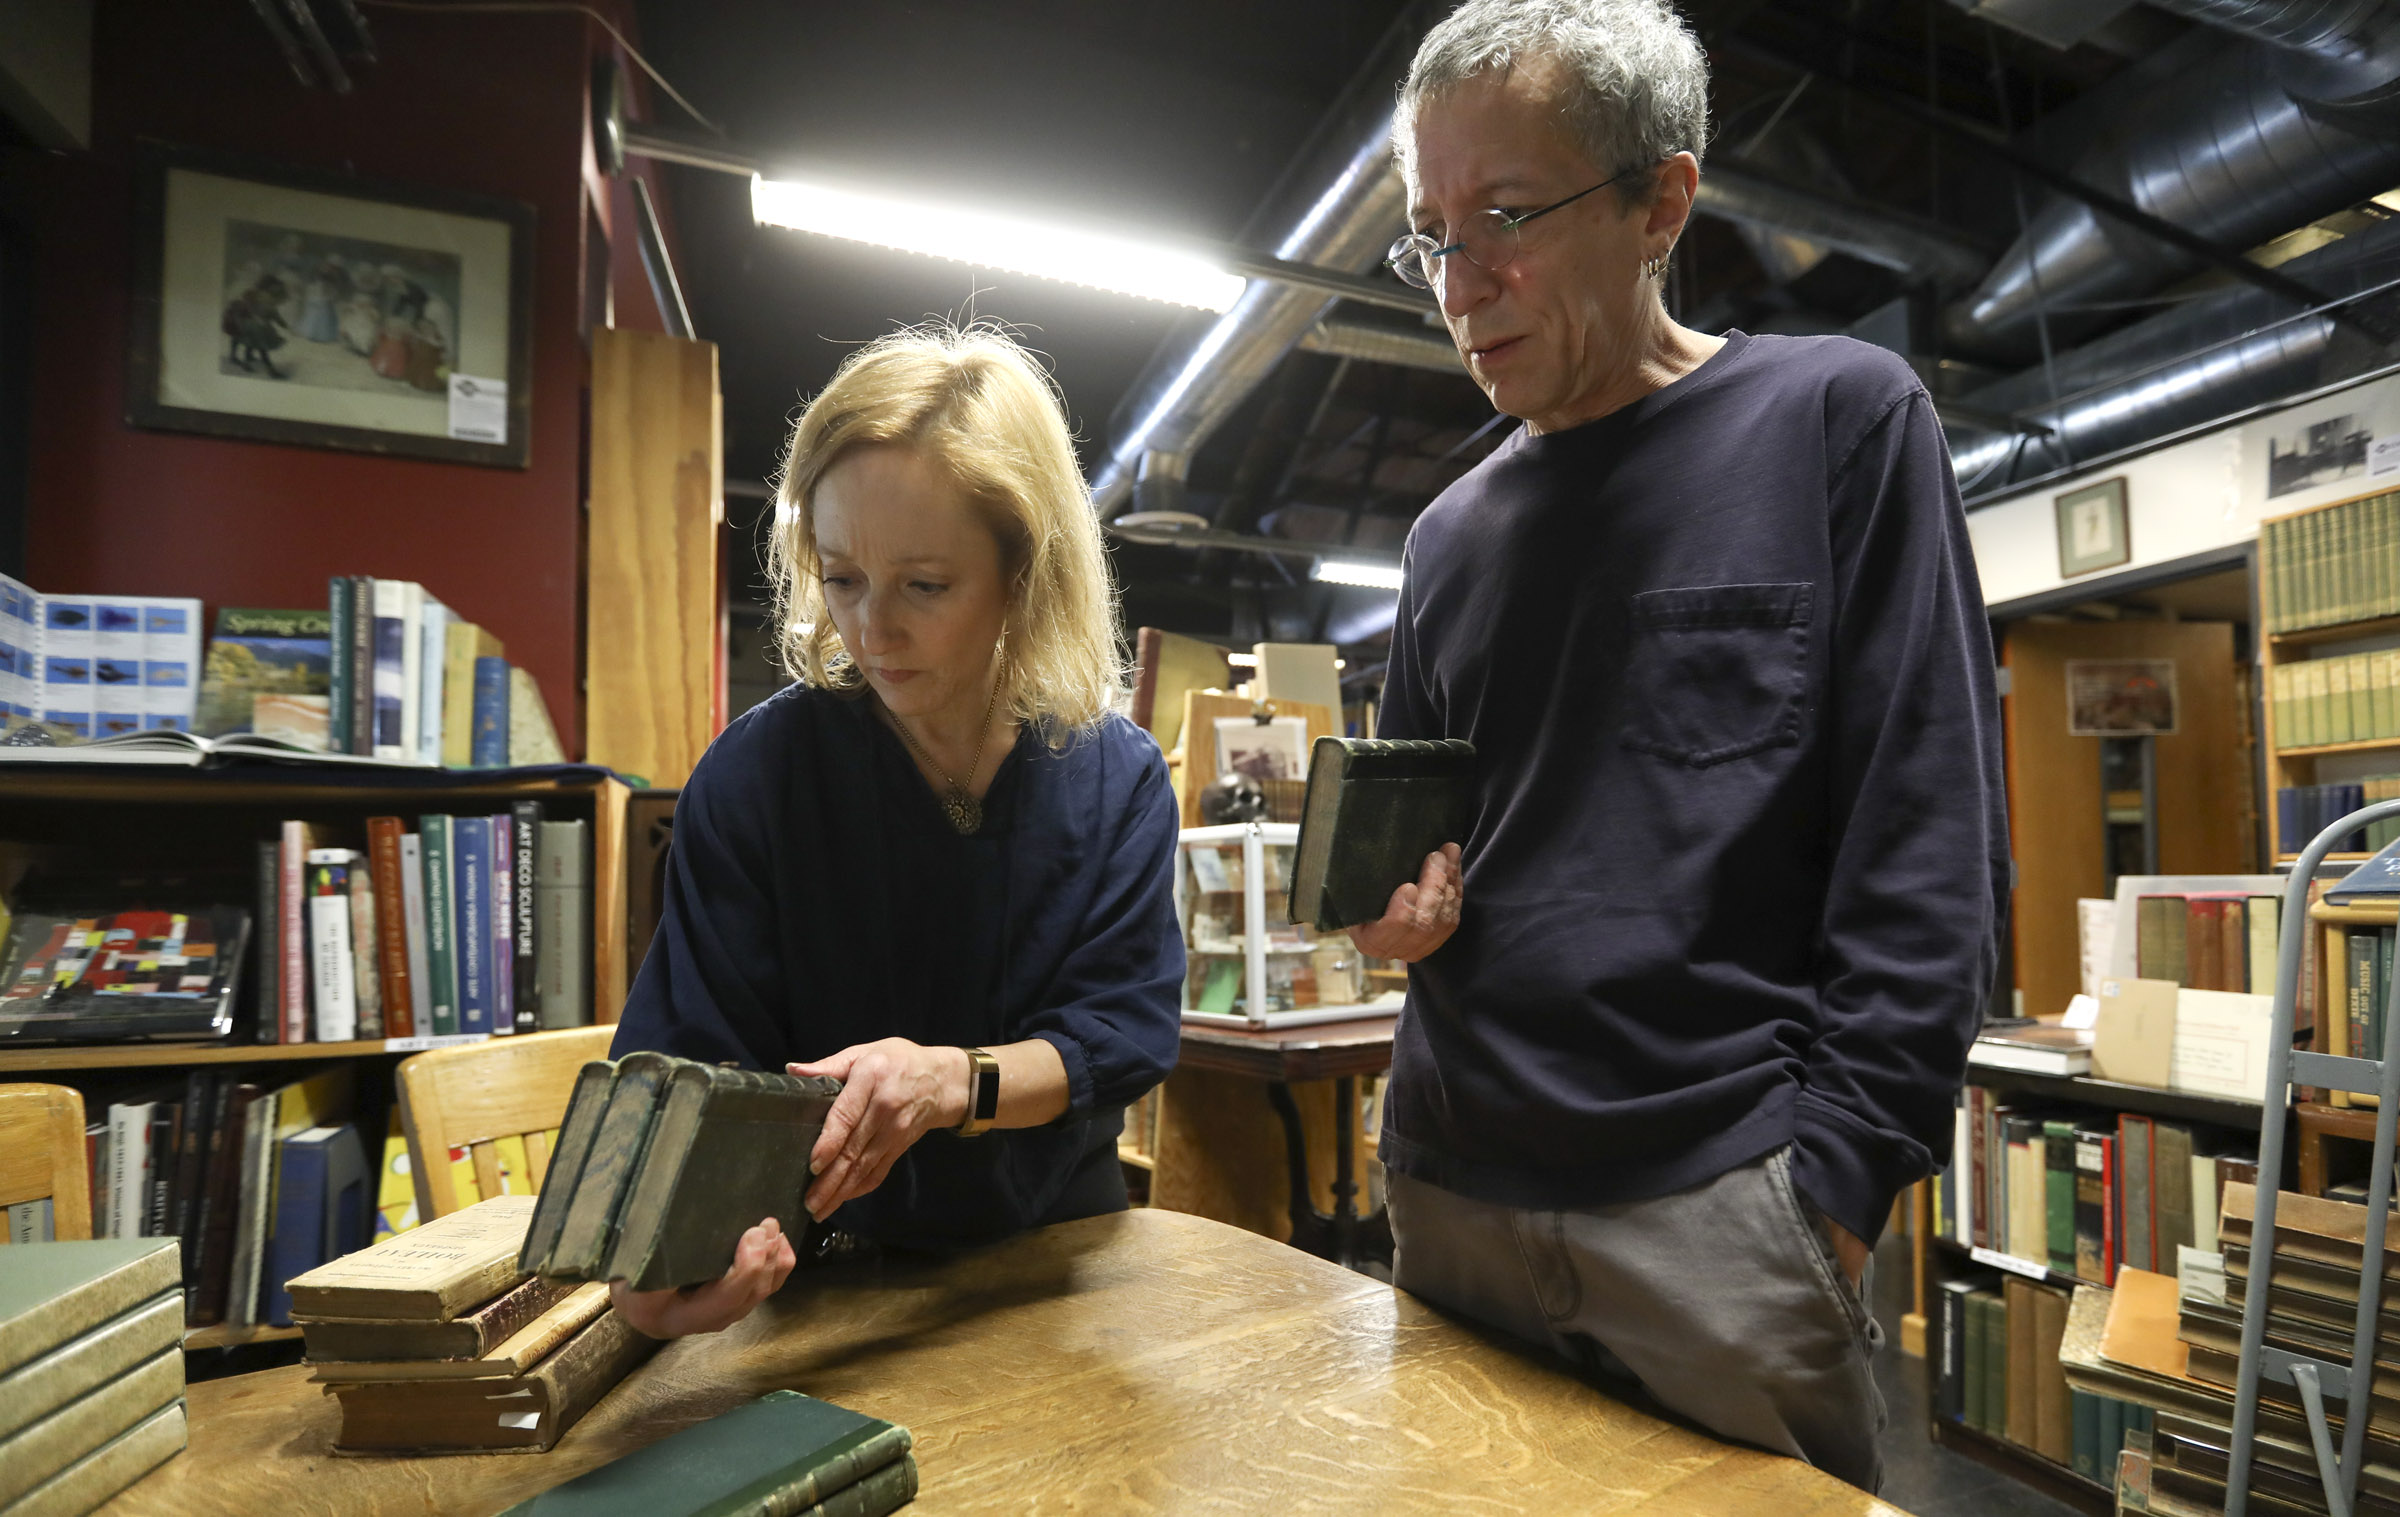 Catherine and Tony Weller, co-owners of Weller Book Works, look through newly acquired books that will be added to the rare book section at the store in Salt Lake City on Friday, Aug. 9, 2019. The book store is celebrating its 90th anniversary.